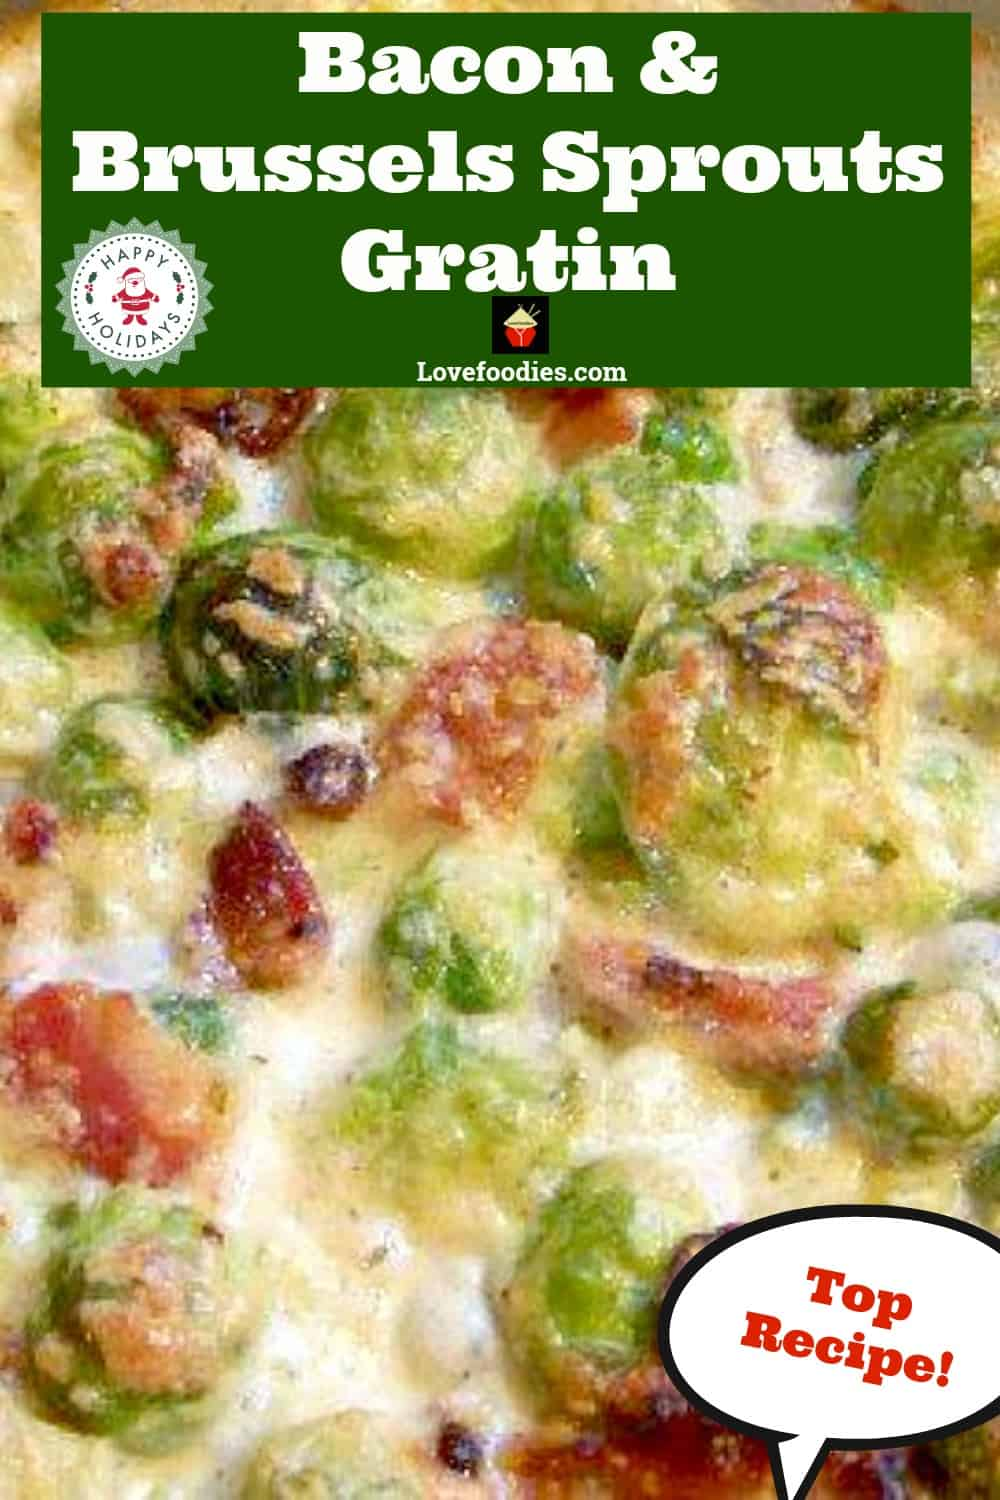 Bacon and Brussels Sprouts Gratin, bacon cheese and Brussels Sprouts all baked in a creamy sauce. Very easy recipe and of course absolutely delicious!